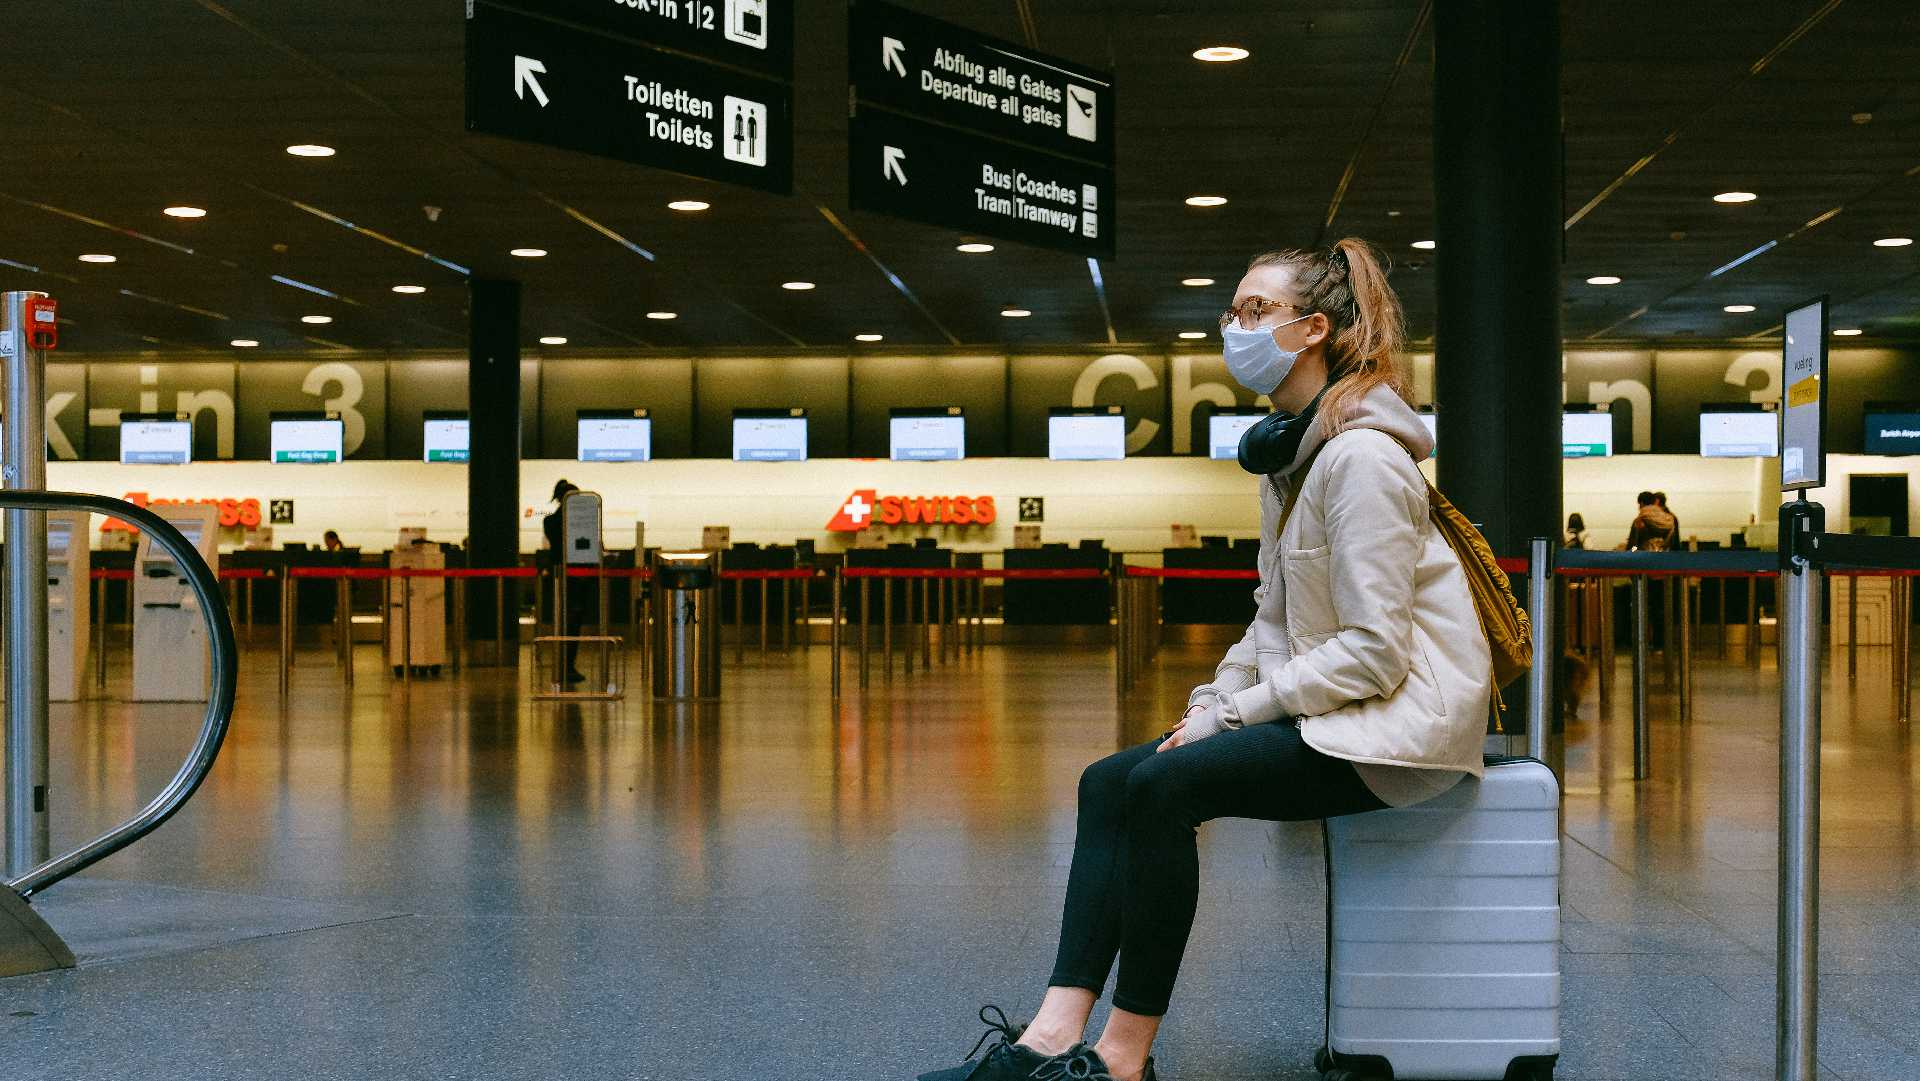 11Basic and important things at the international airport